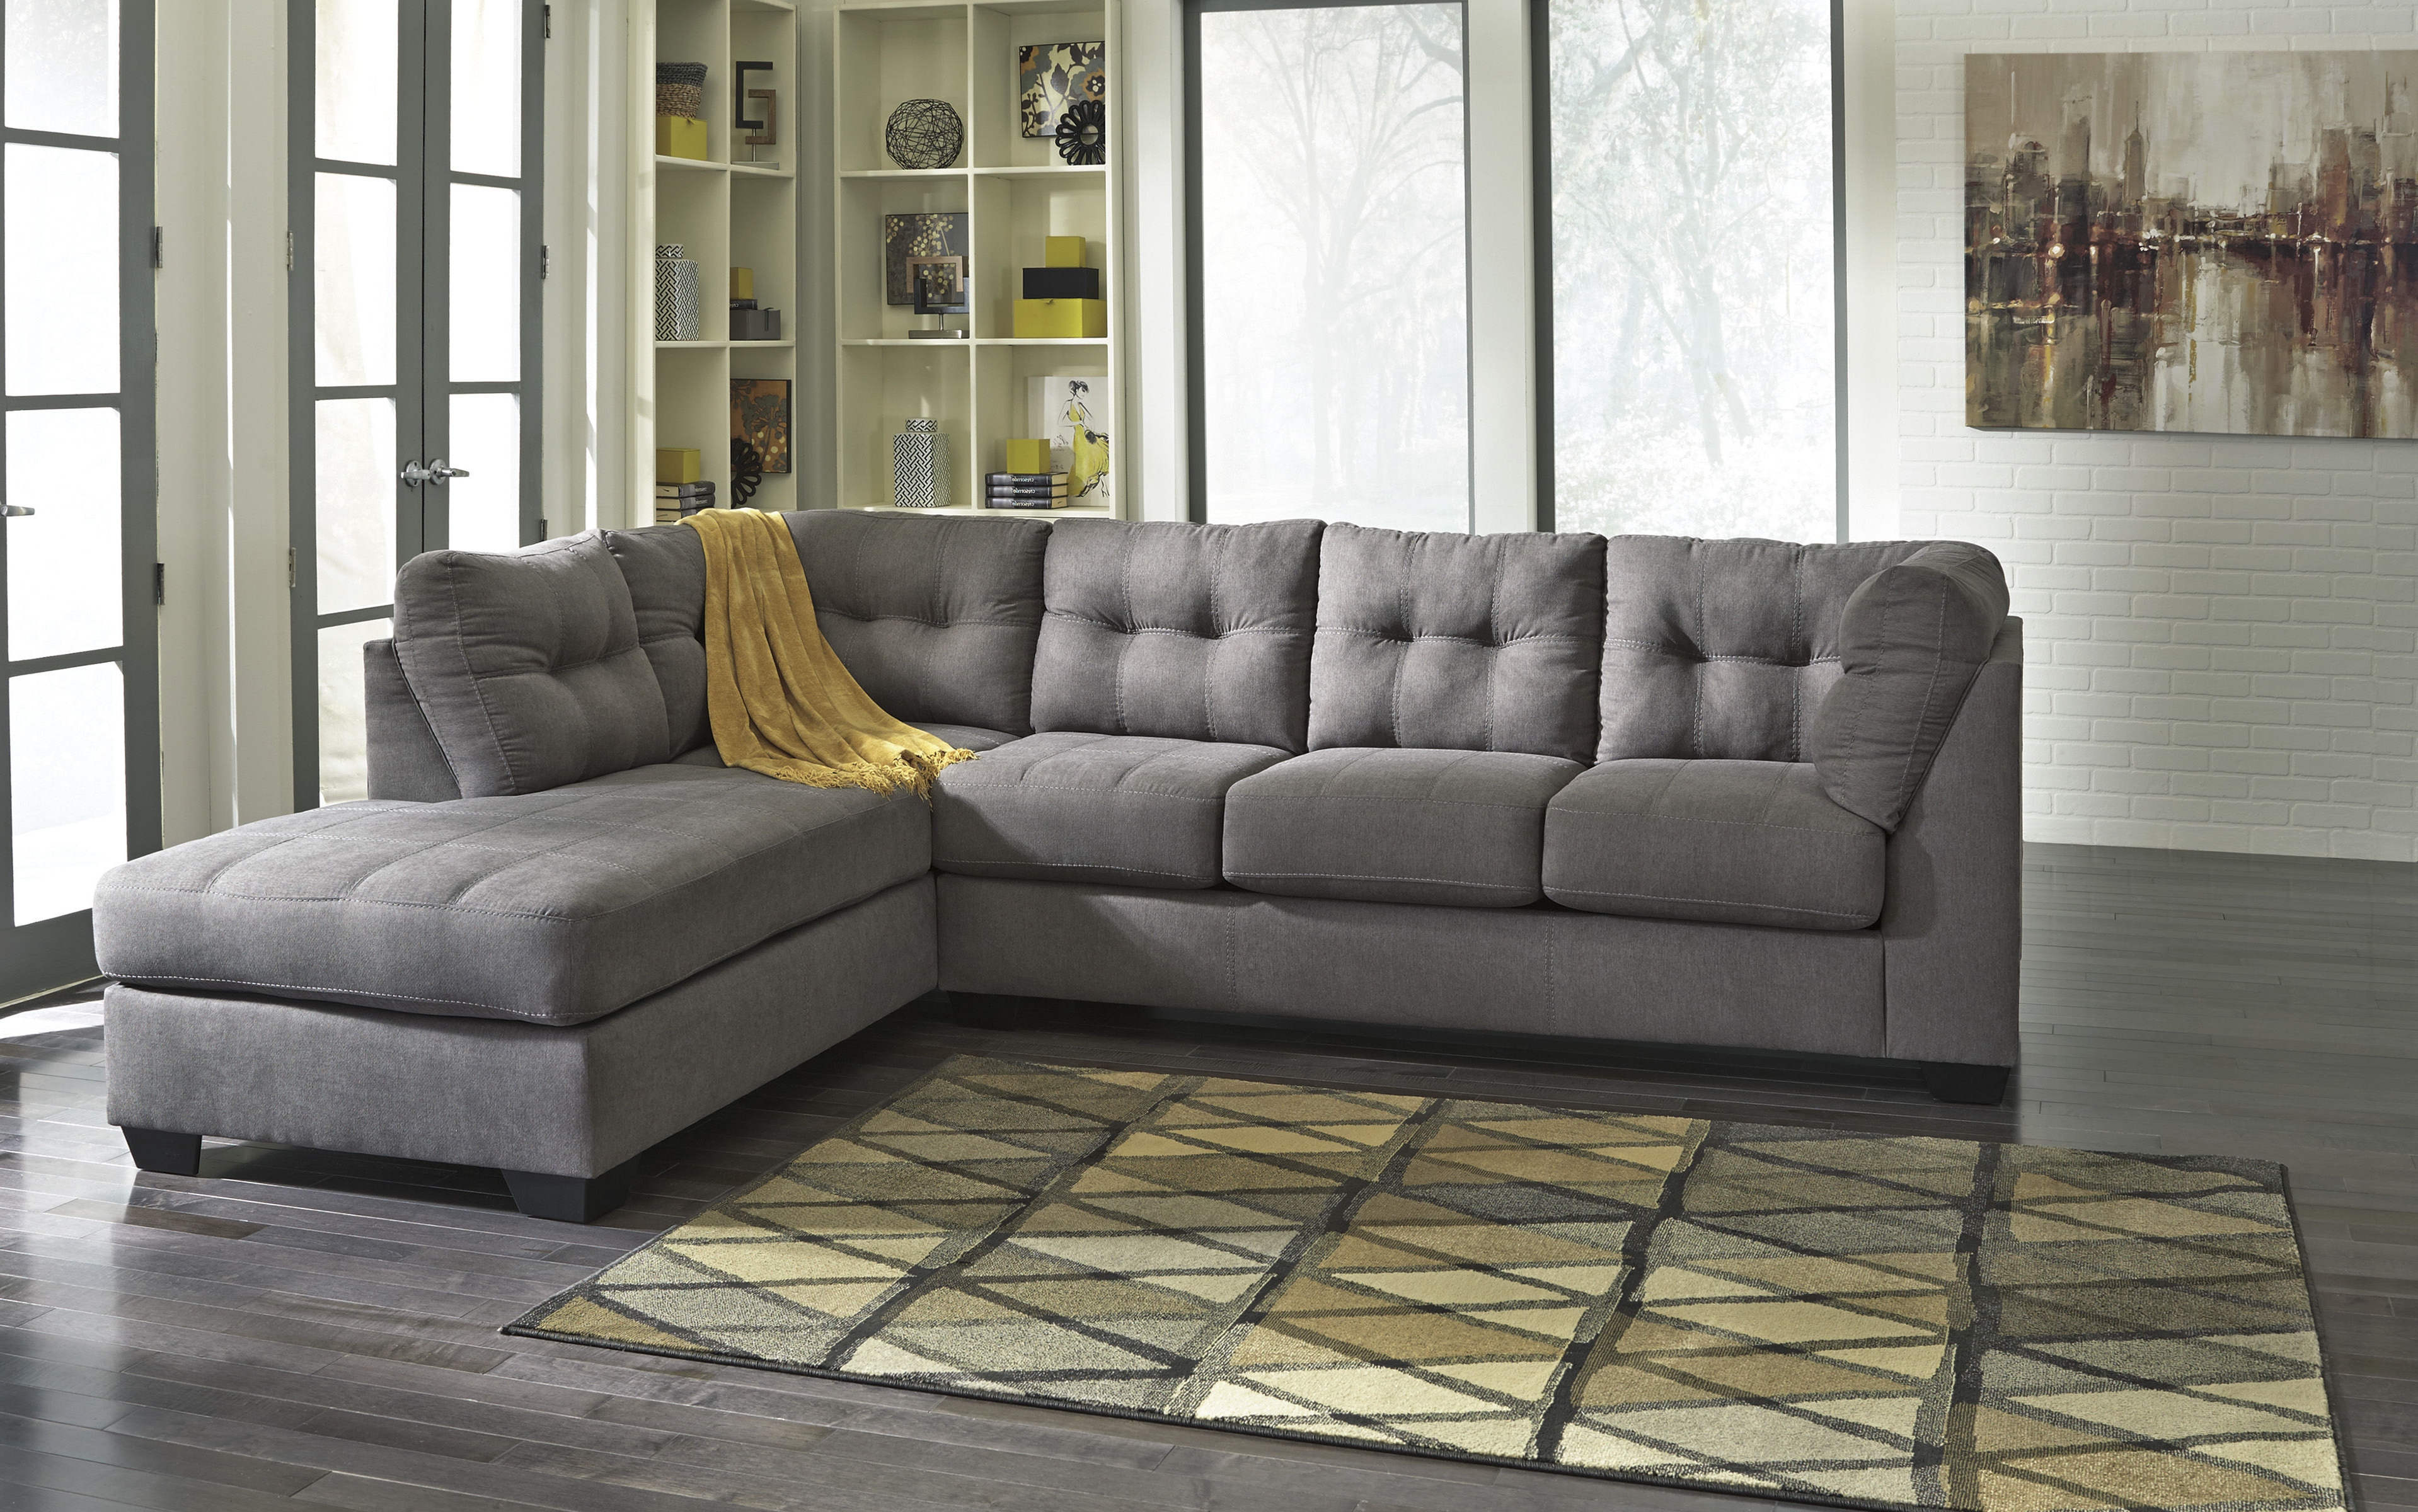 Lucy Dark Grey 2 Piece Sleeper Sectionals With Raf Chaise Throughout Best And Newest Ashley Furniture Maier Charcoal Raf Chaise Sectional (Gallery 3 of 20)